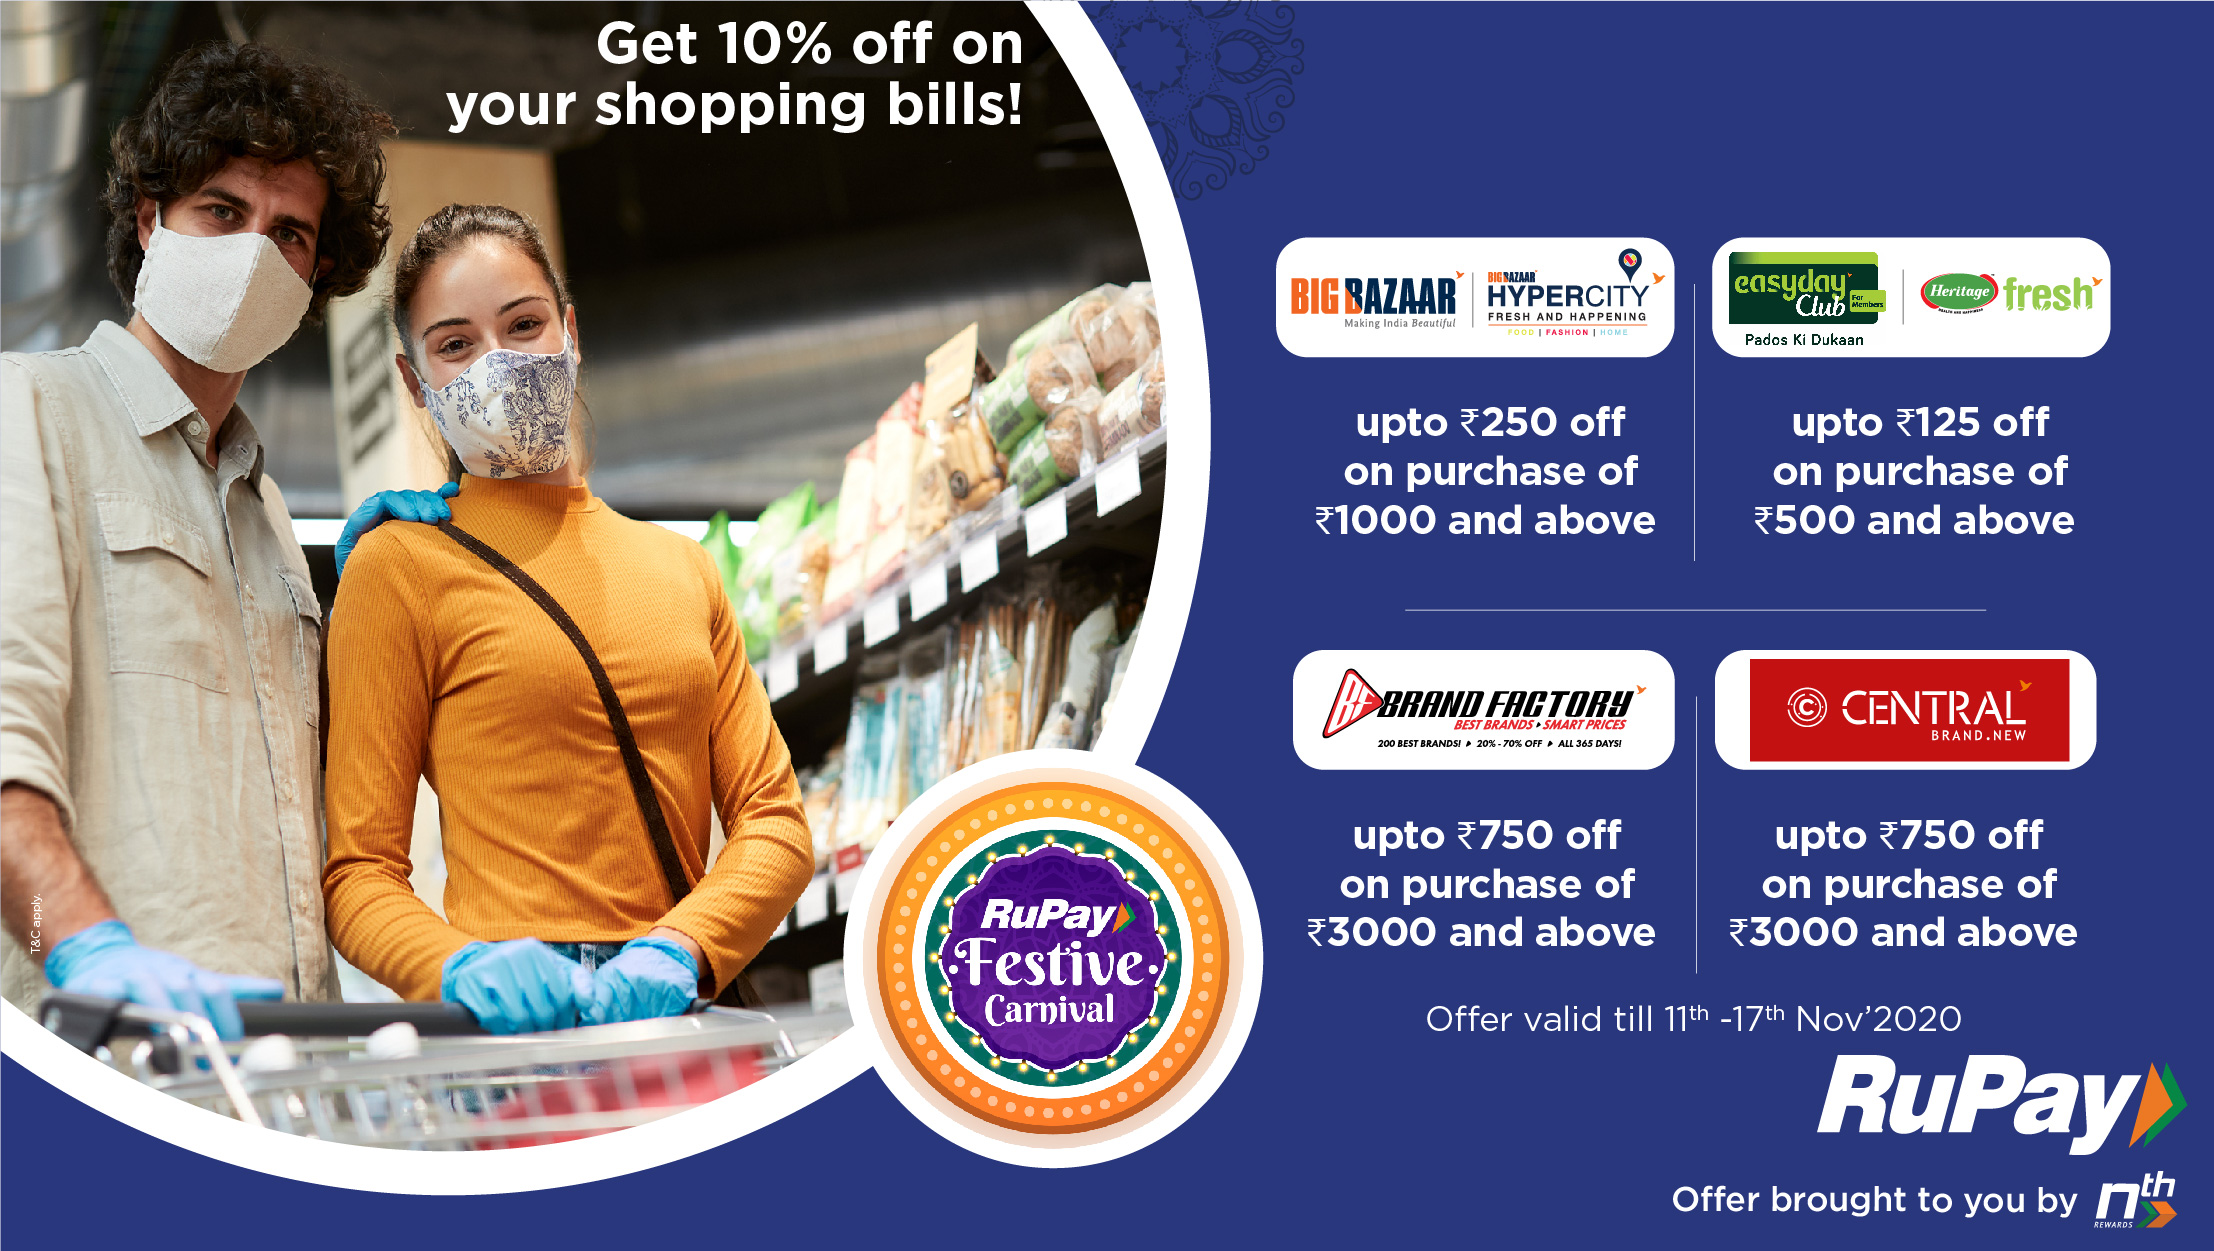 Rupay Future Group Offer